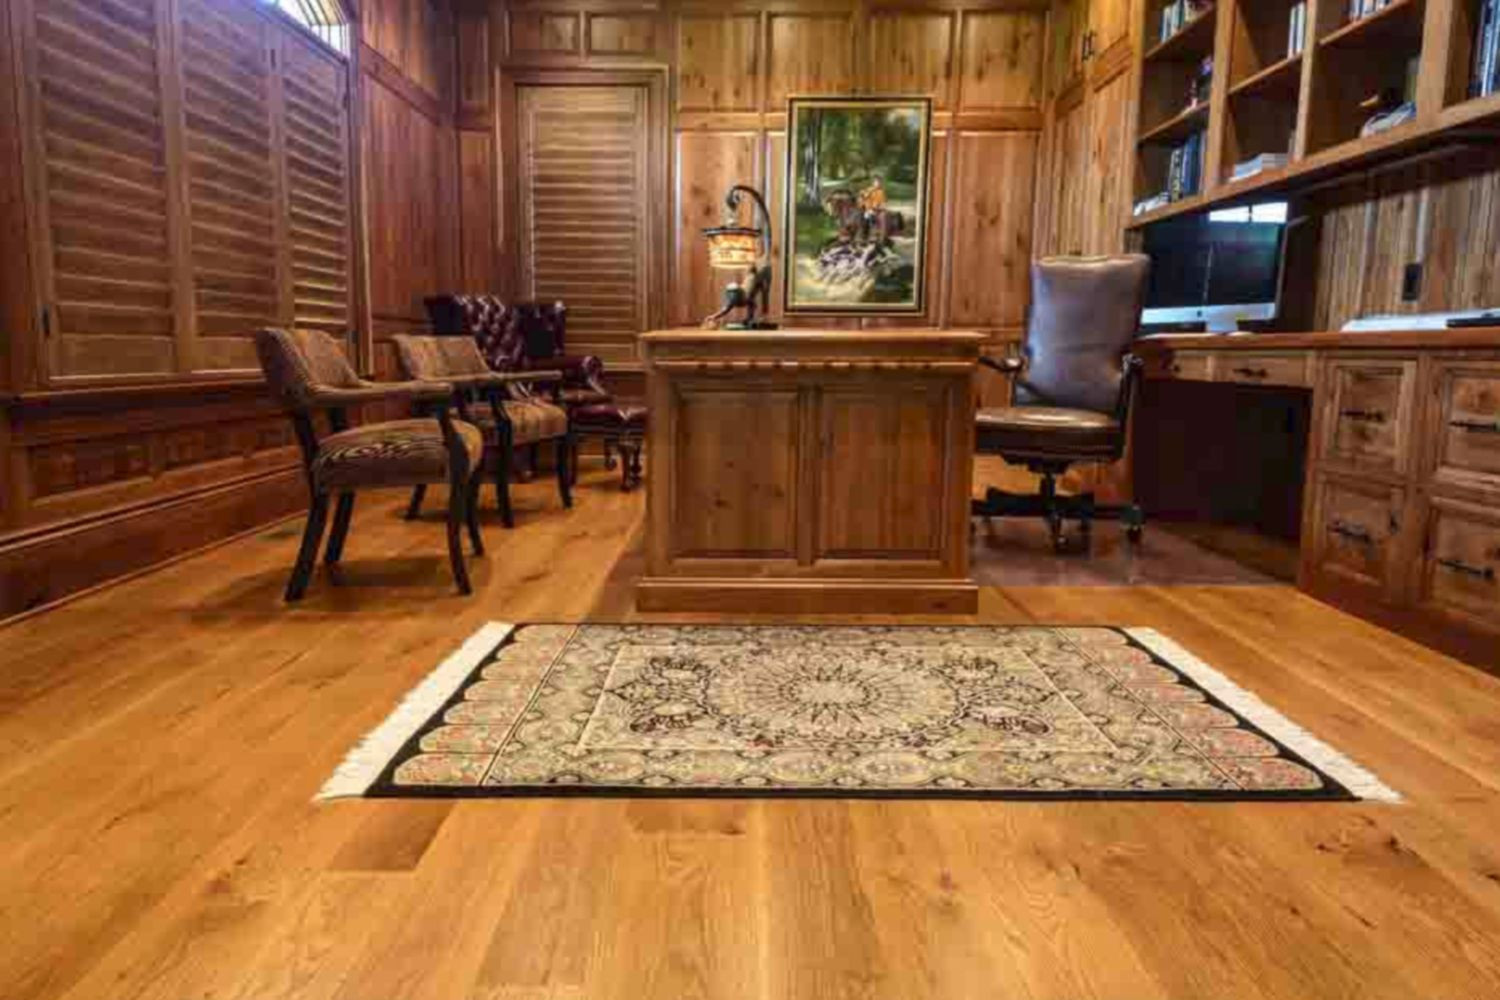 costco hardwood flooring cost of top 5 brands for solid hardwood flooring with the woods company white oak 1500 x 1000 56a49f6d5f9b58b7d0d7e1db